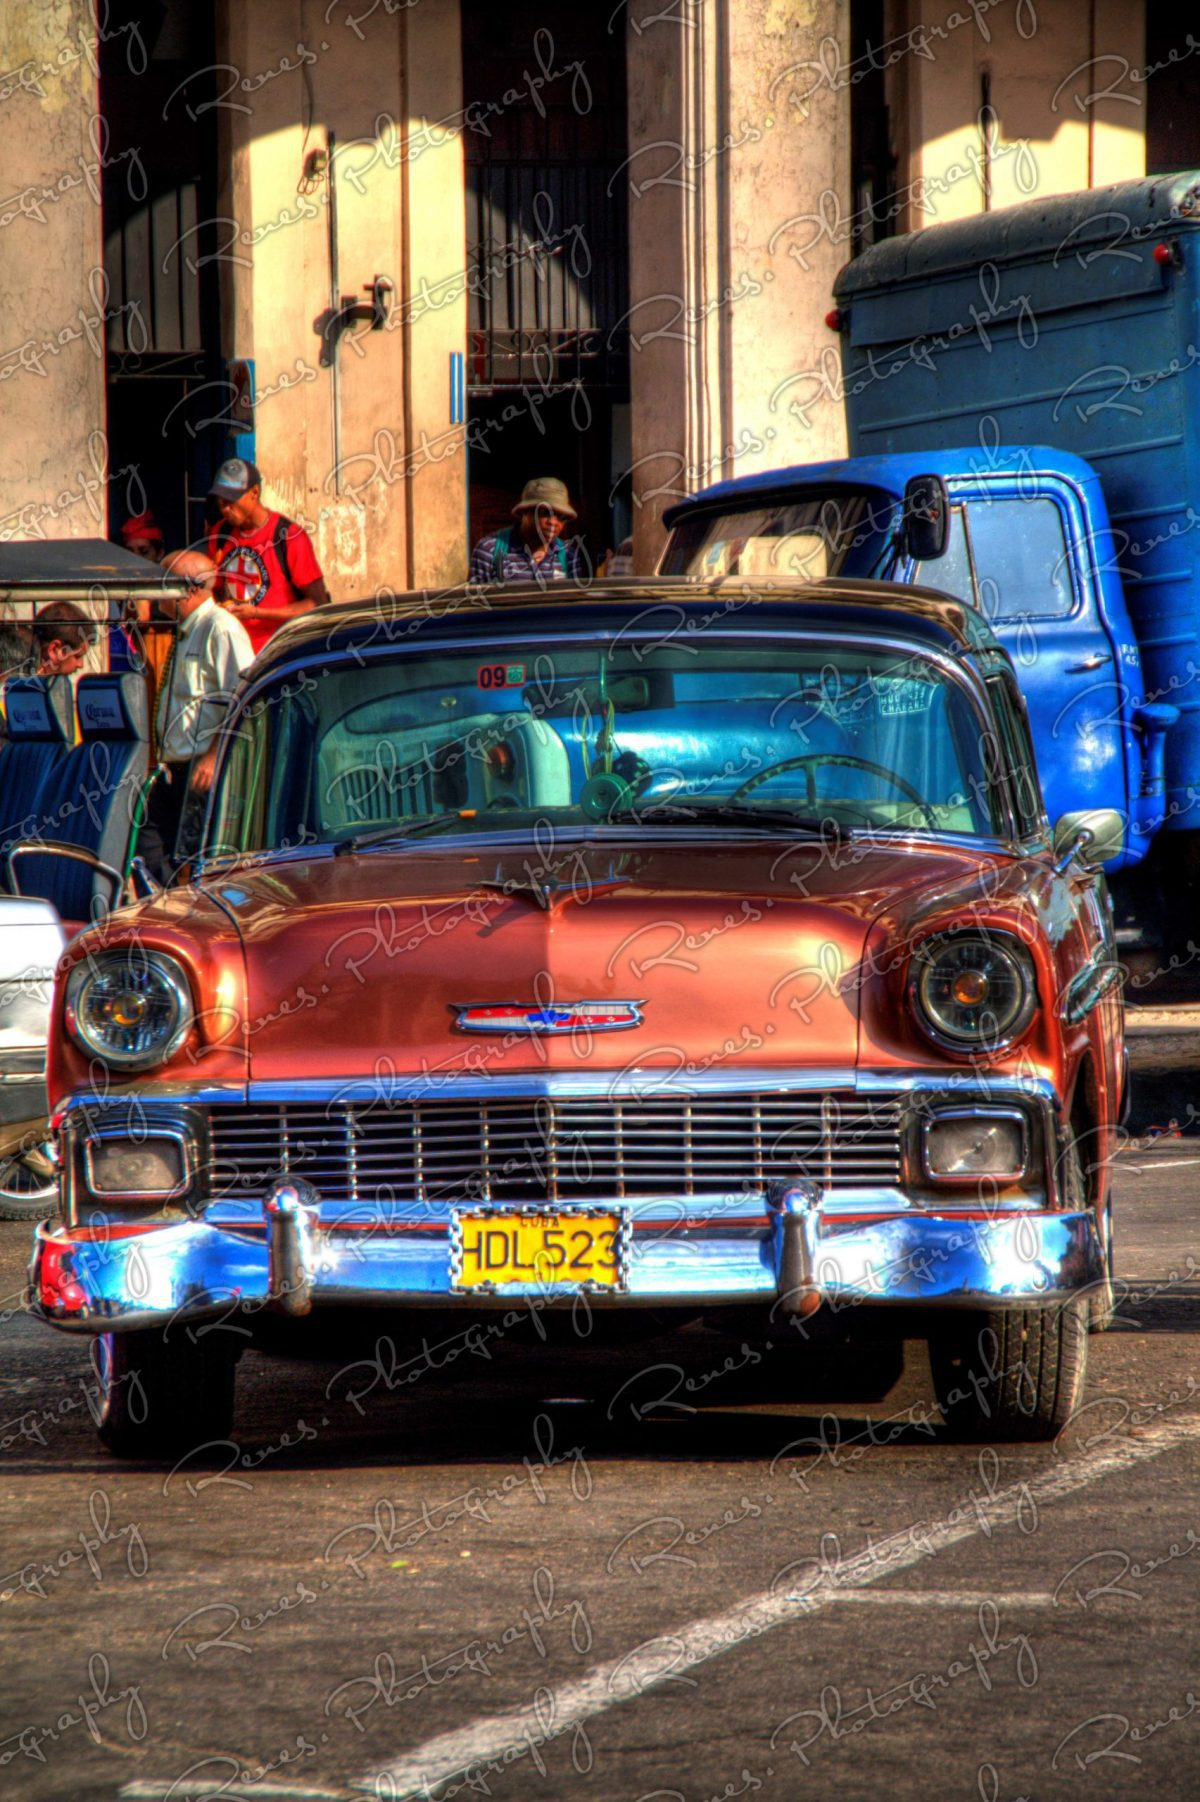 1956 Chevrolet Bel Air on the streets of Havana Cuba 4 scaled